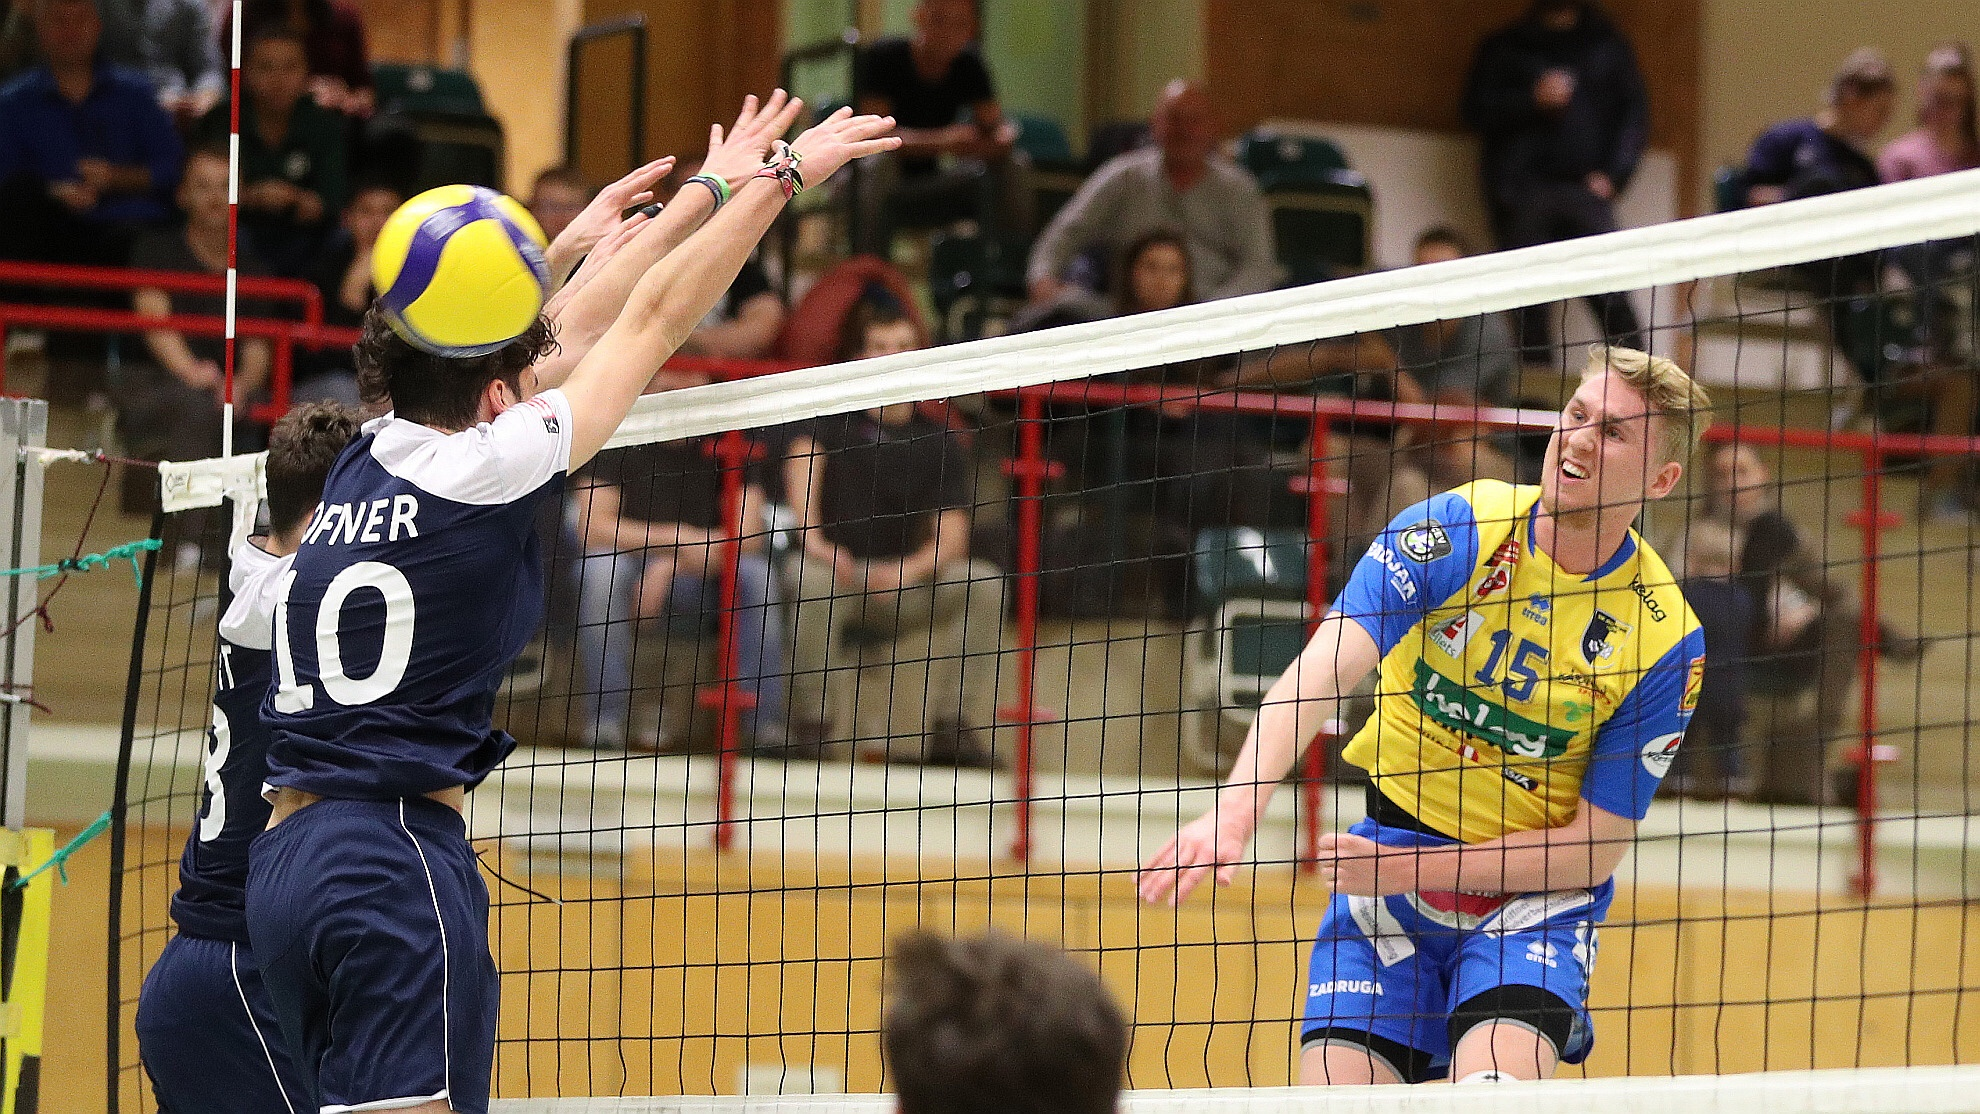 Austria: Graz first semifinalist – As predicted, Aich/Dob demolished Sokol in the last Game 1 of quarterfinals!